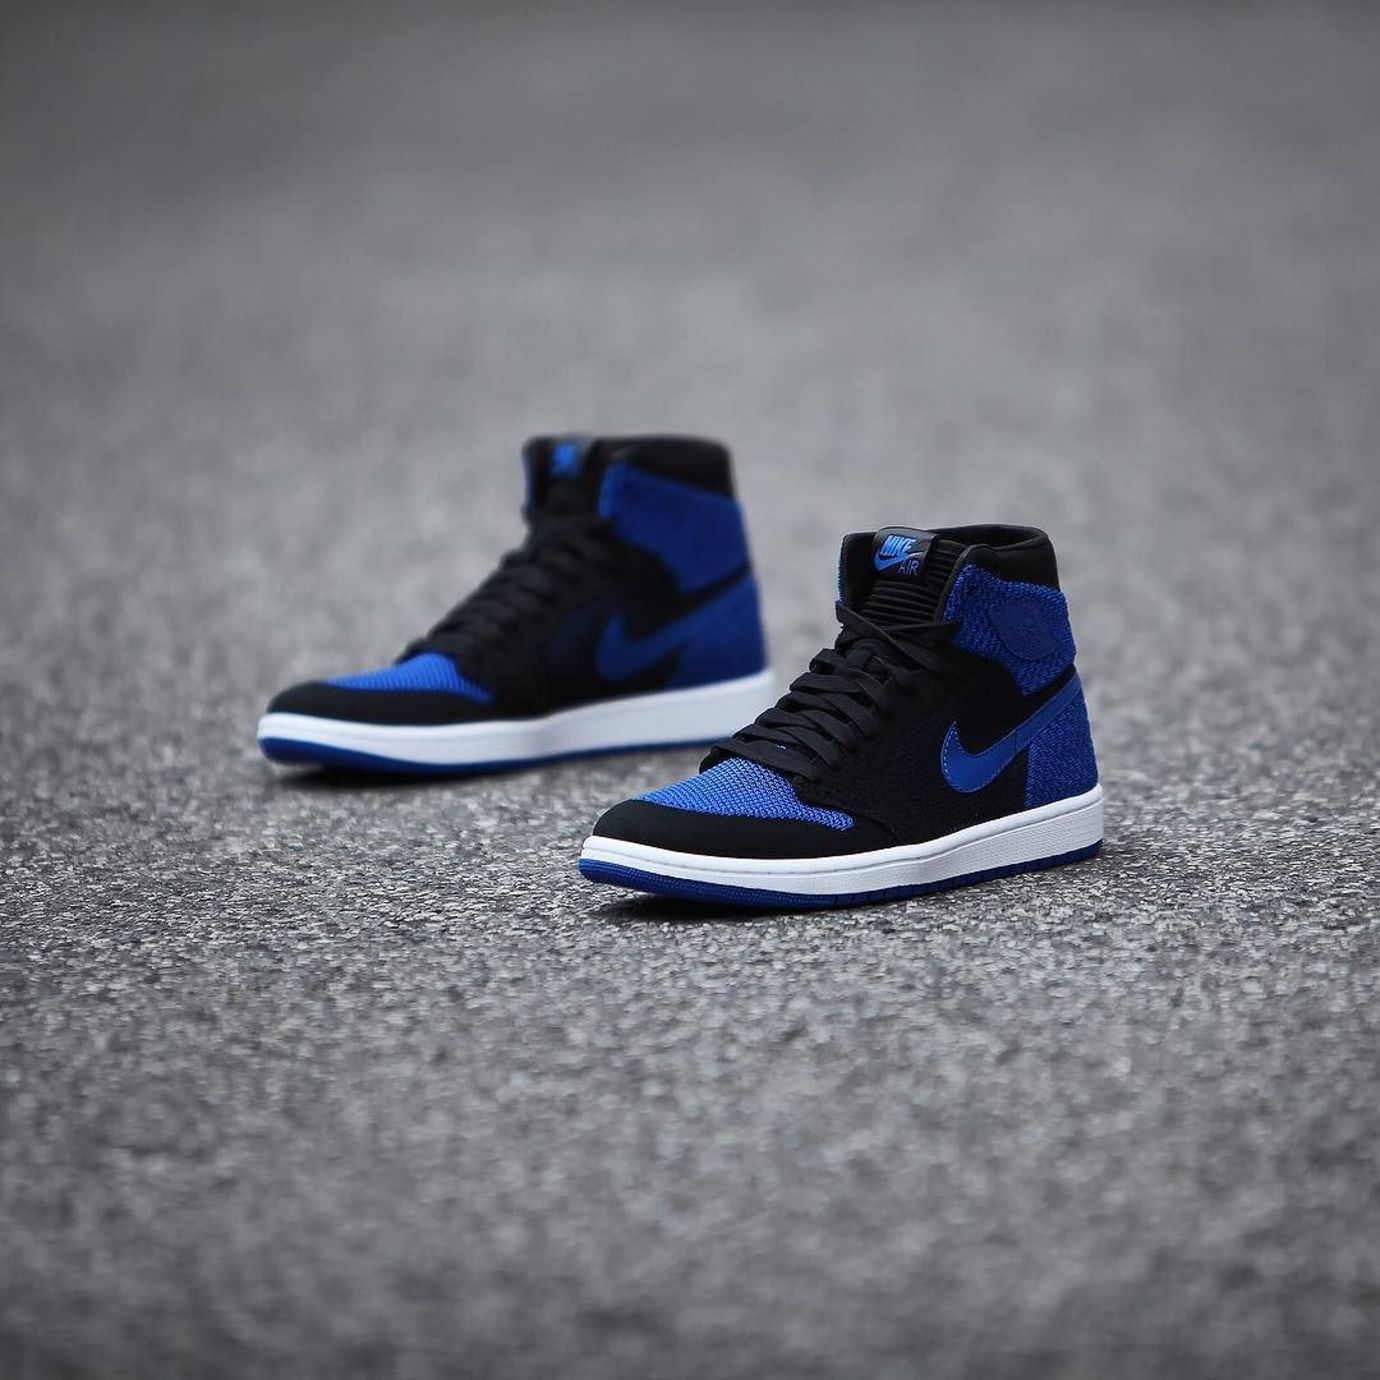 Air Jordan 1 Flyknit Royal Release Date 919704-006 (6)